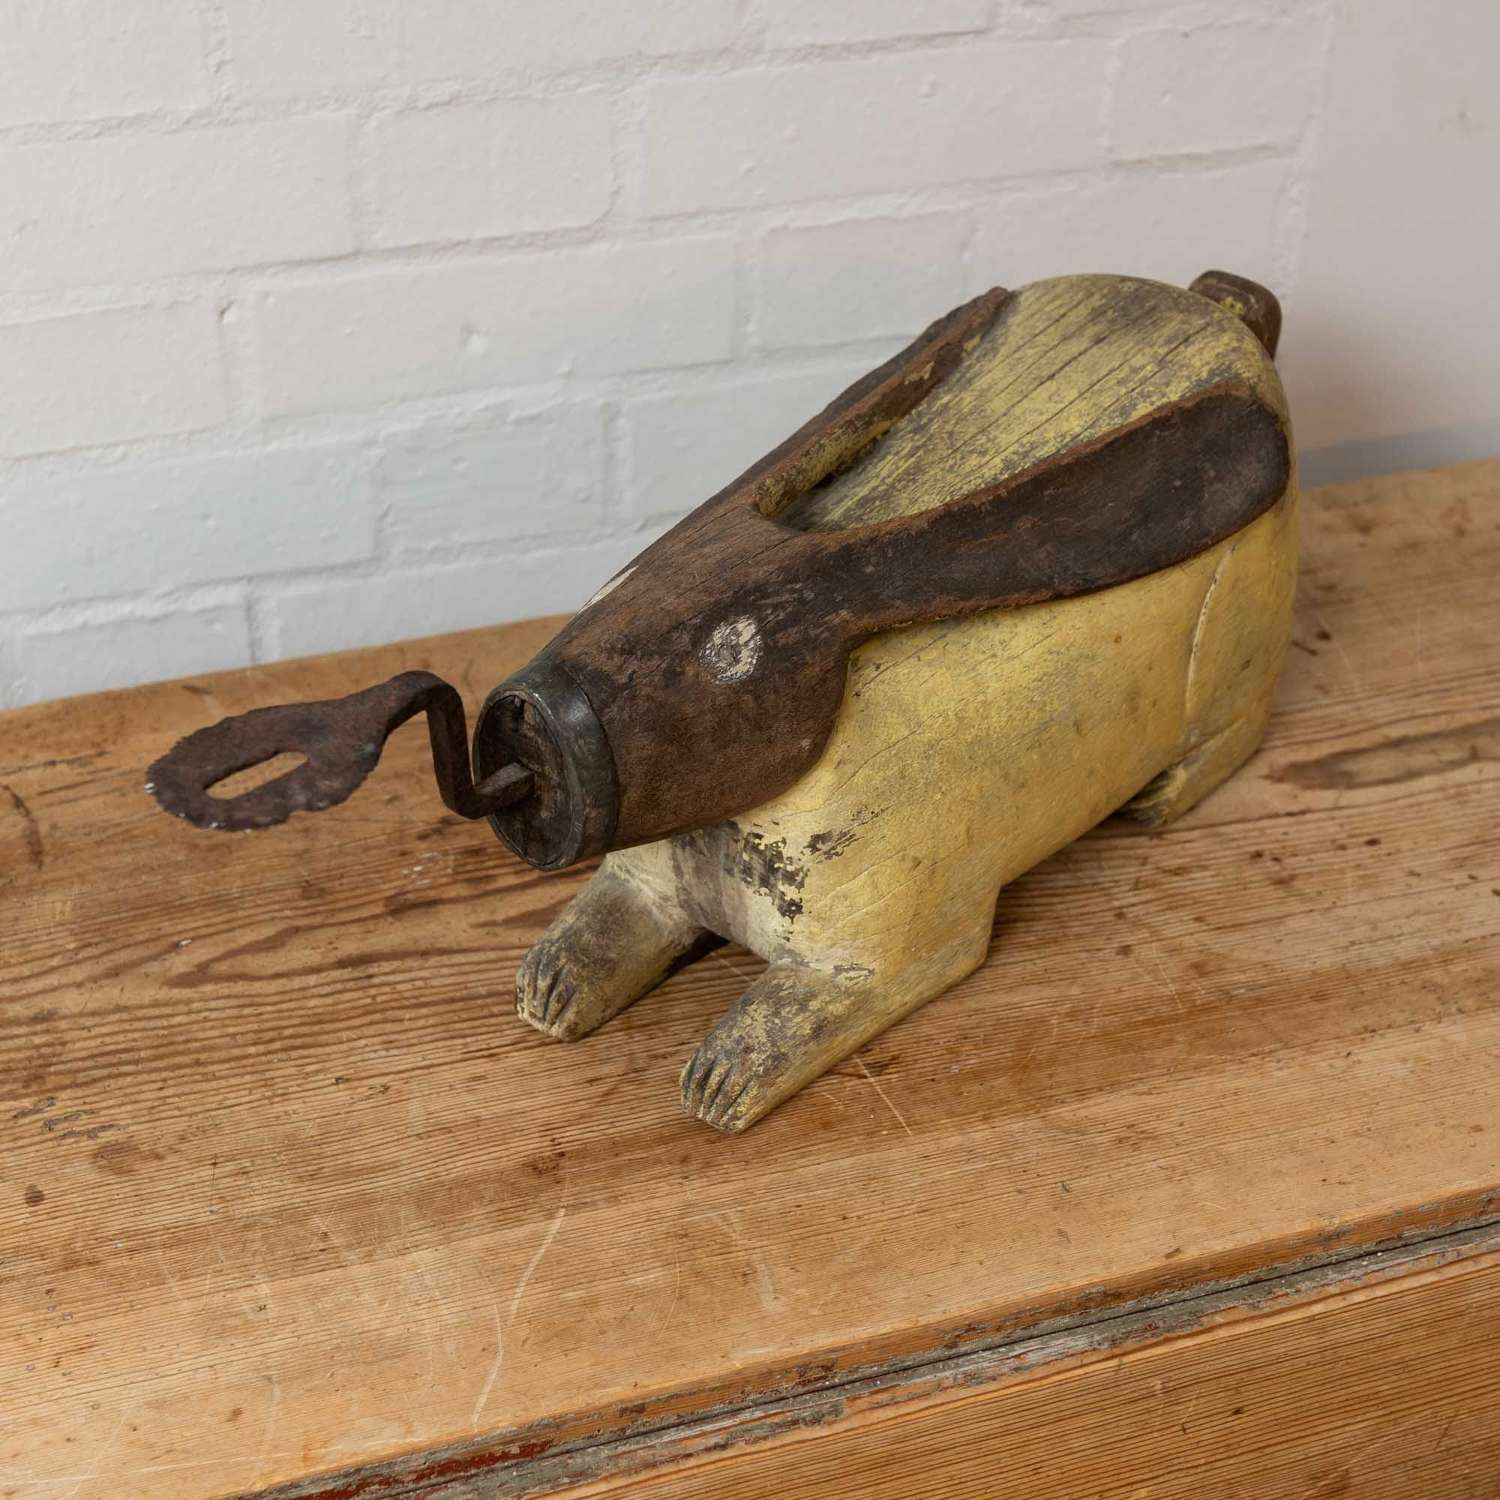 19thc south east asian rabbit coconut shredder